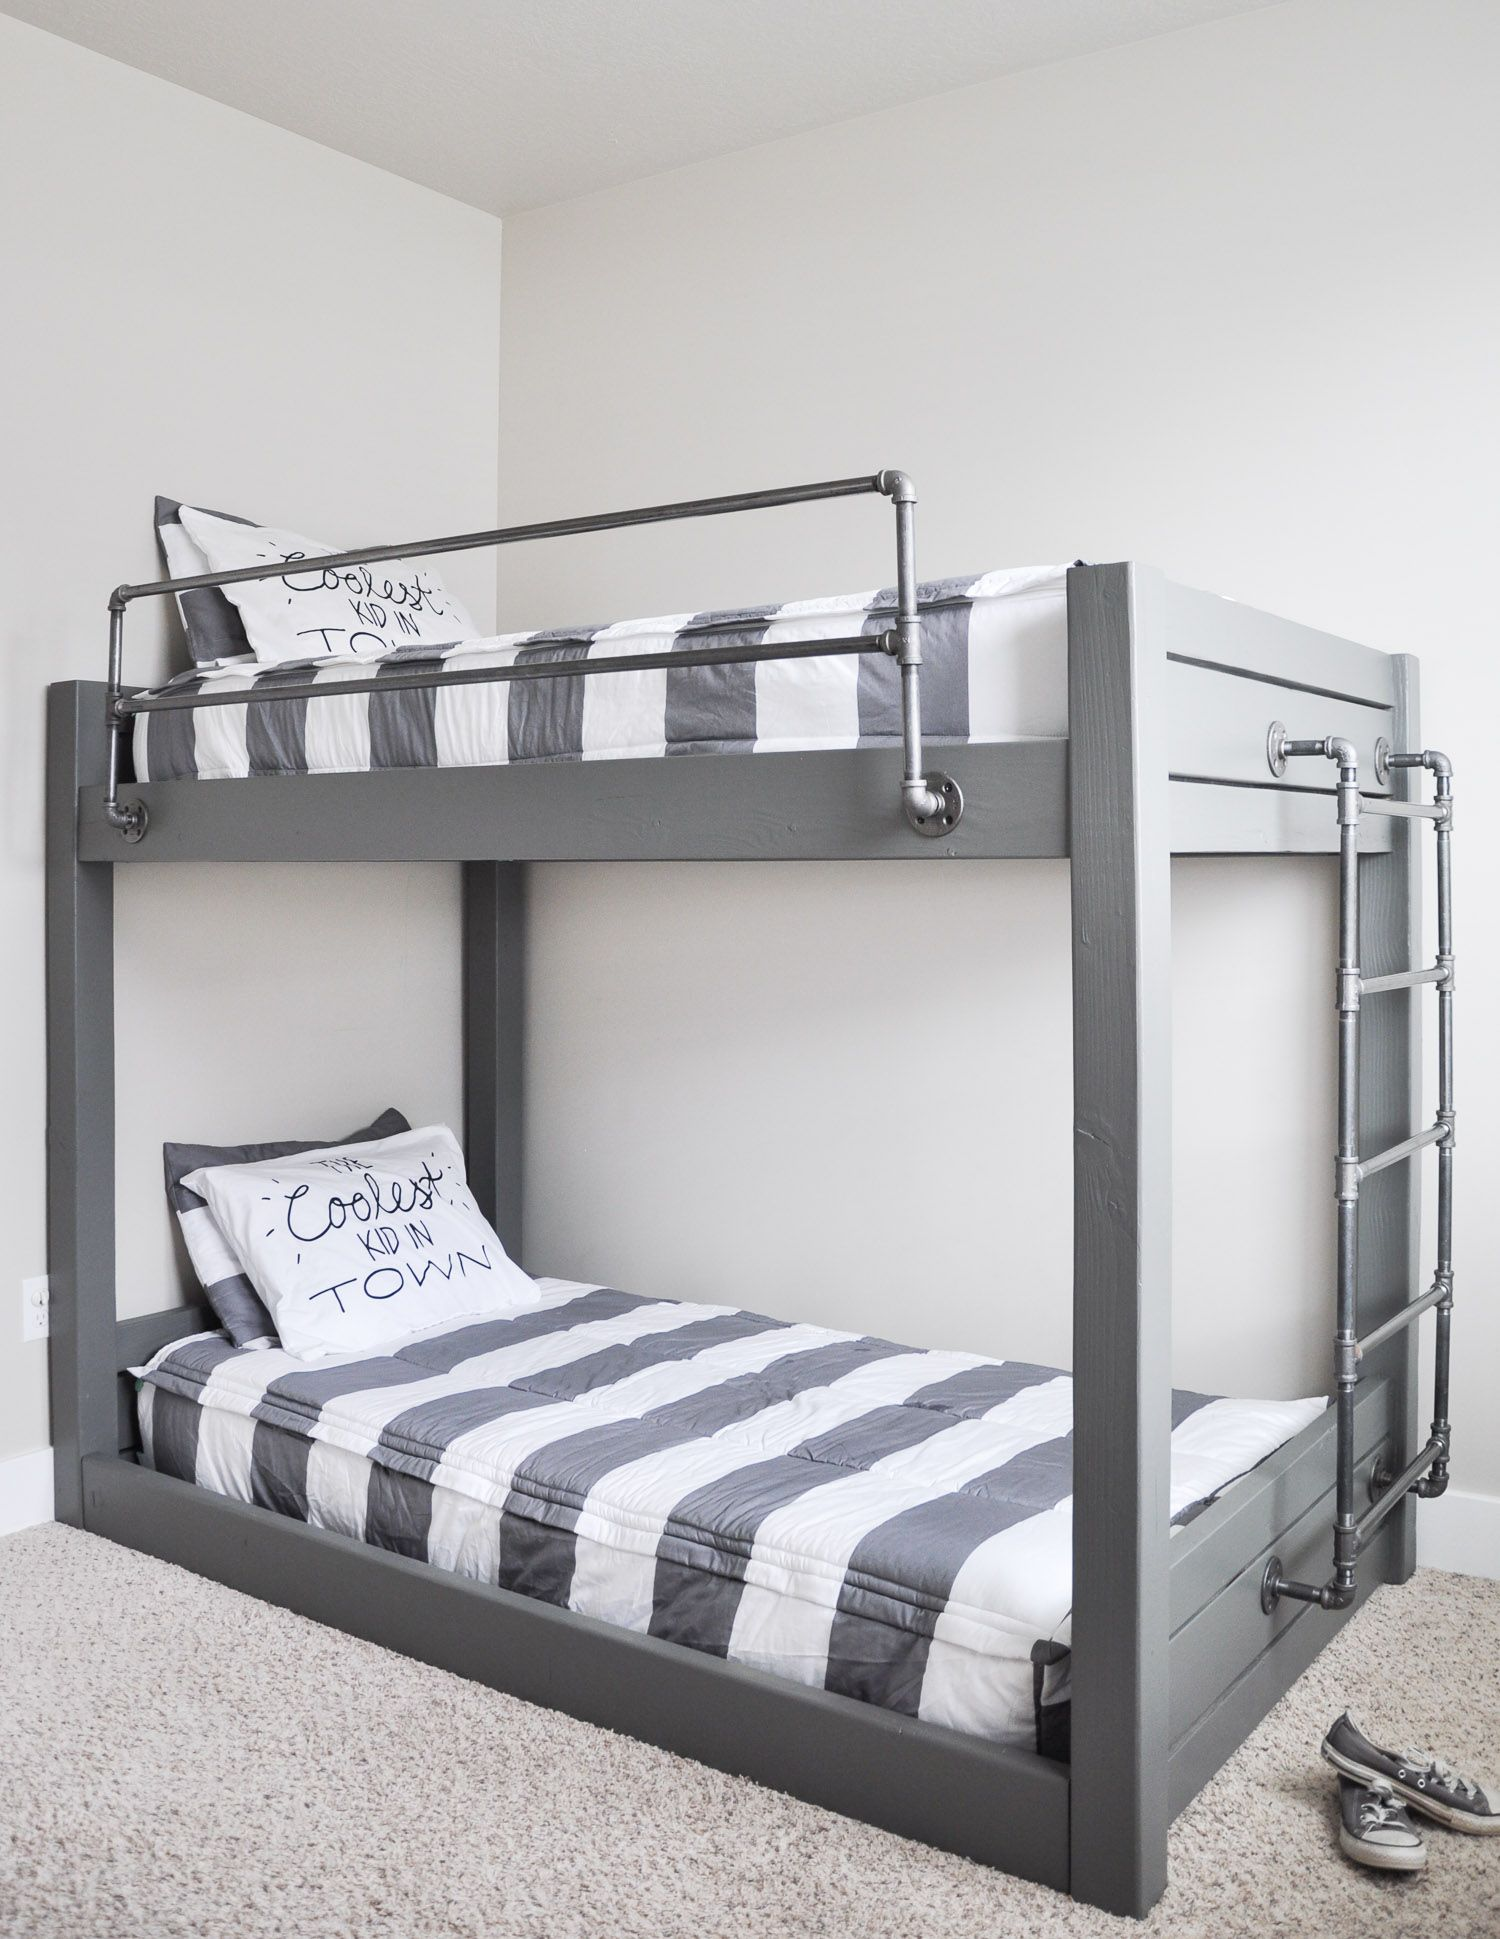 Diy Industrial Bunk Bed Free Plans Cherished Bliss Diy Bunk